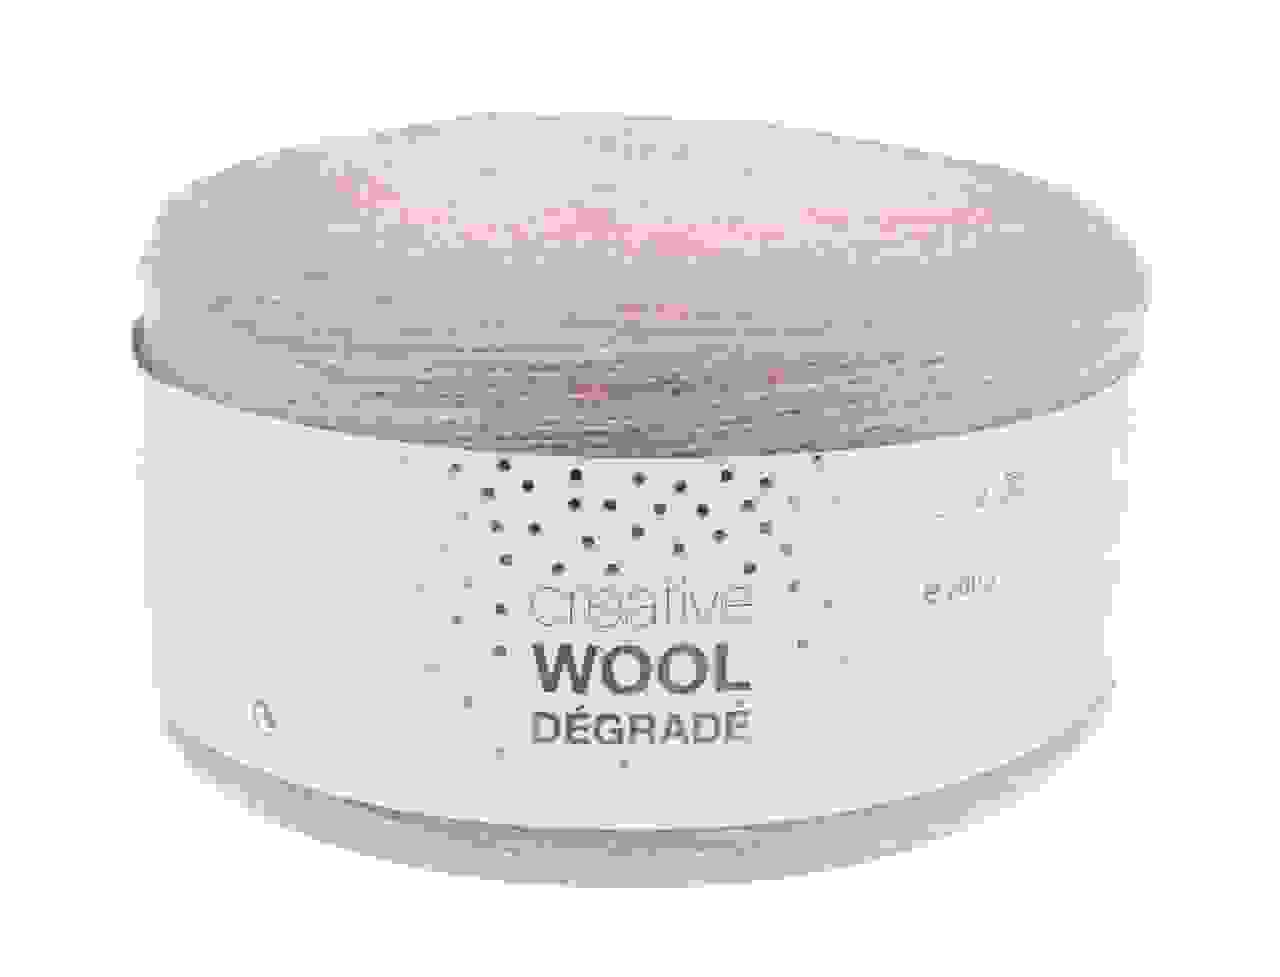 1 Creative wool degrade rico.jpg